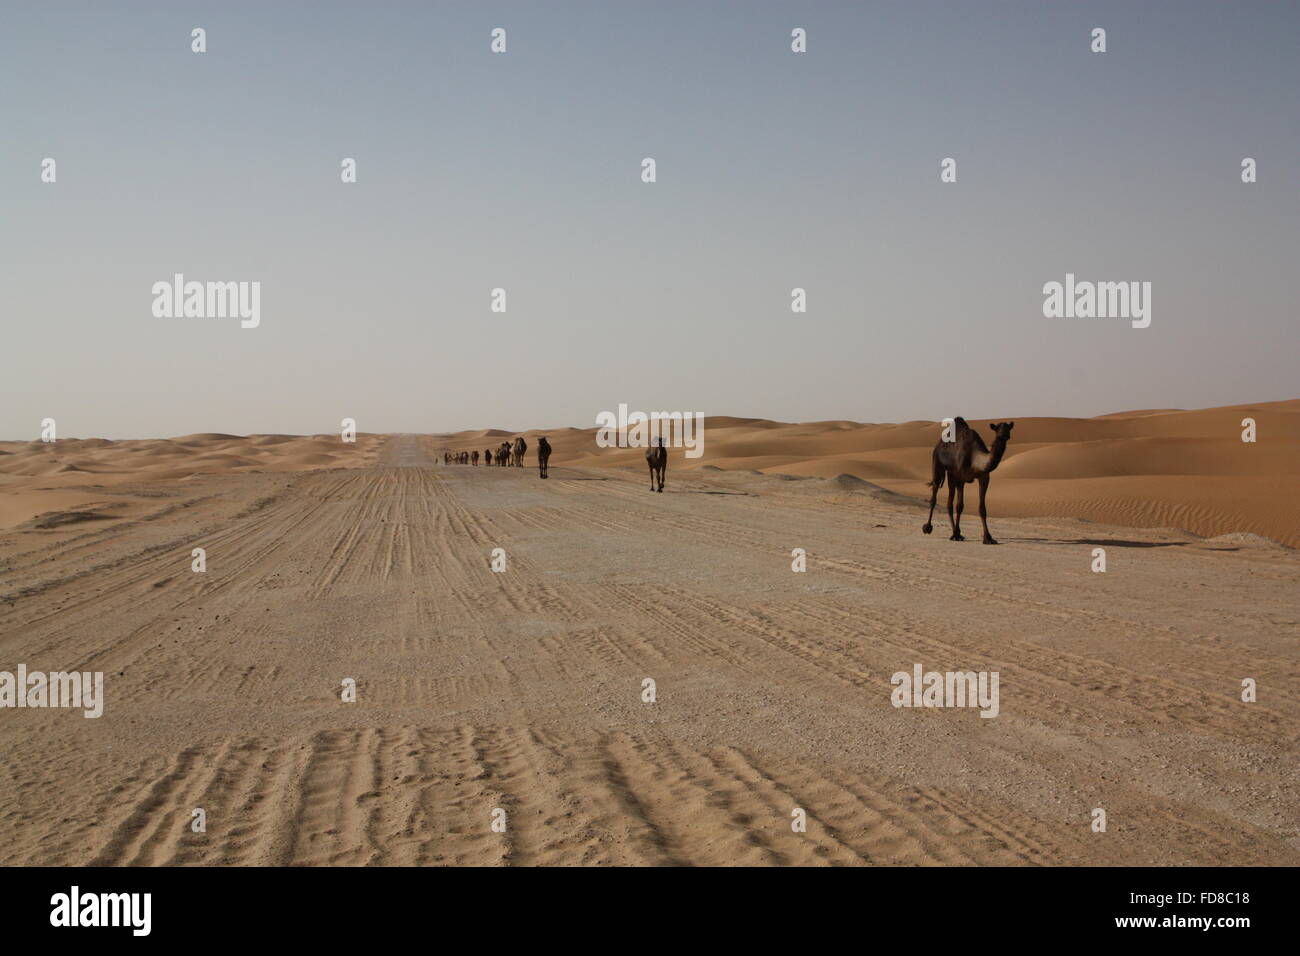 Camels Walking On Desert Road Against Clear Sky - Stock Image